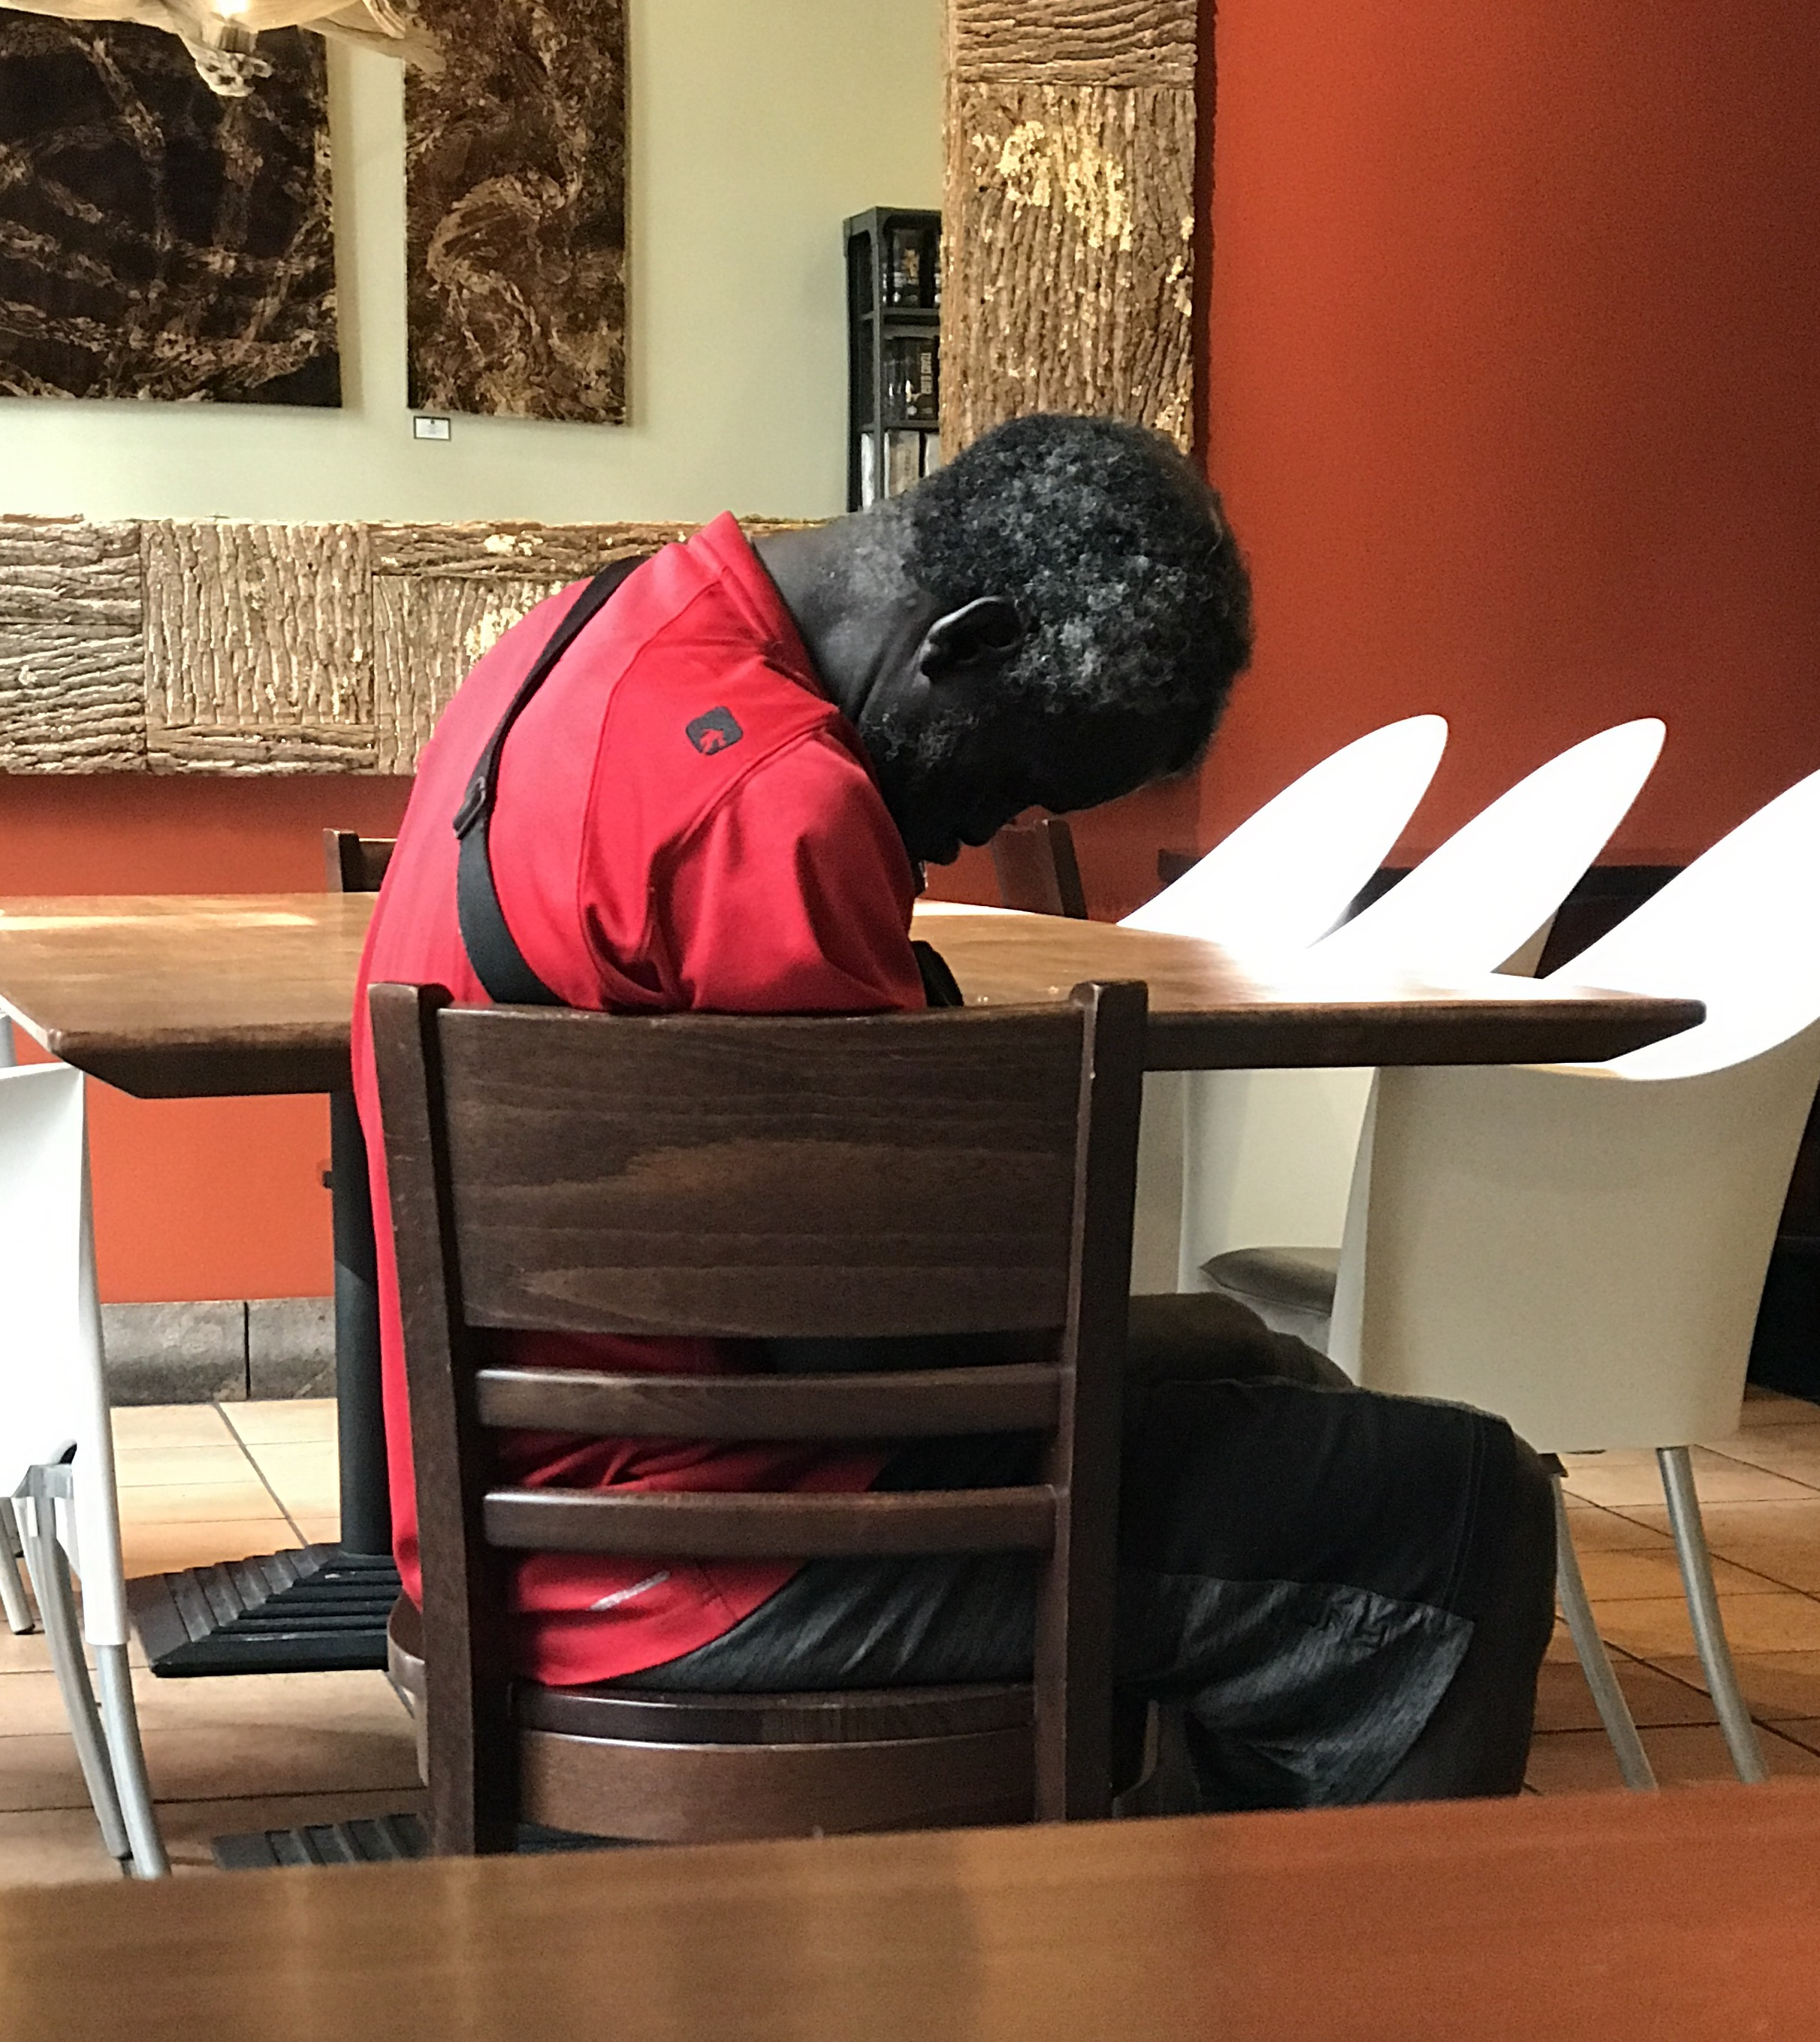 Current mood : I took this while working (editing not making coffee) in a Starbucks by the venue in Orlando. He walked in, slumped in a chair and went to sleep. He had Jetlag too. Definitely.